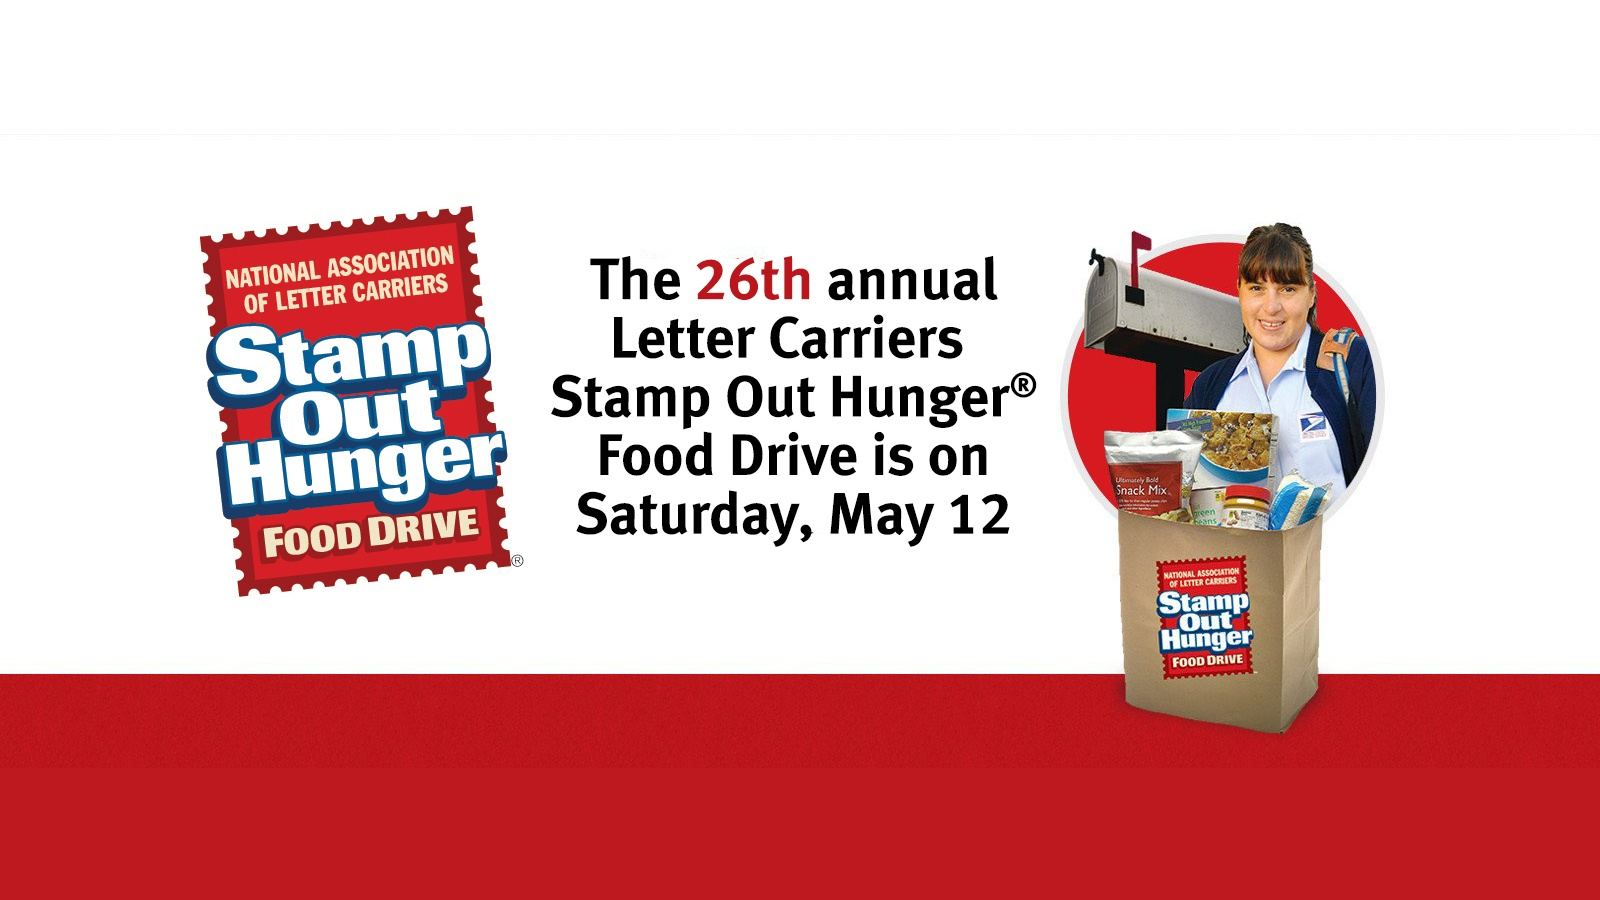 stampouthunger